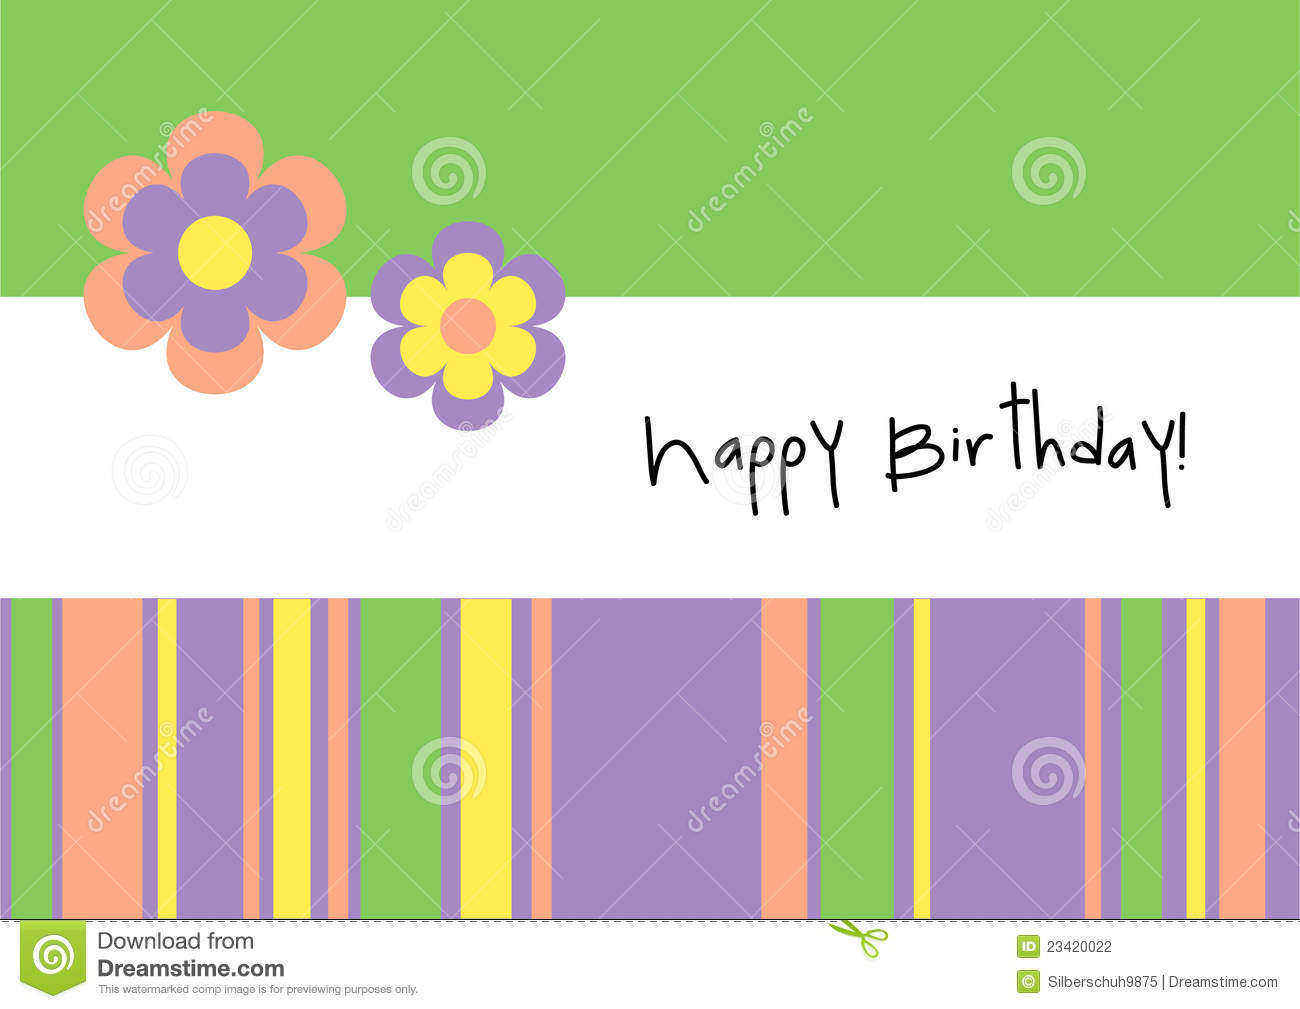 wallpaper design for birthday ; happy-birthday-card-templates-the-art-mad-wallpapers-flowers-green-rectangle-shape-black-letters-download-from-dreamstim